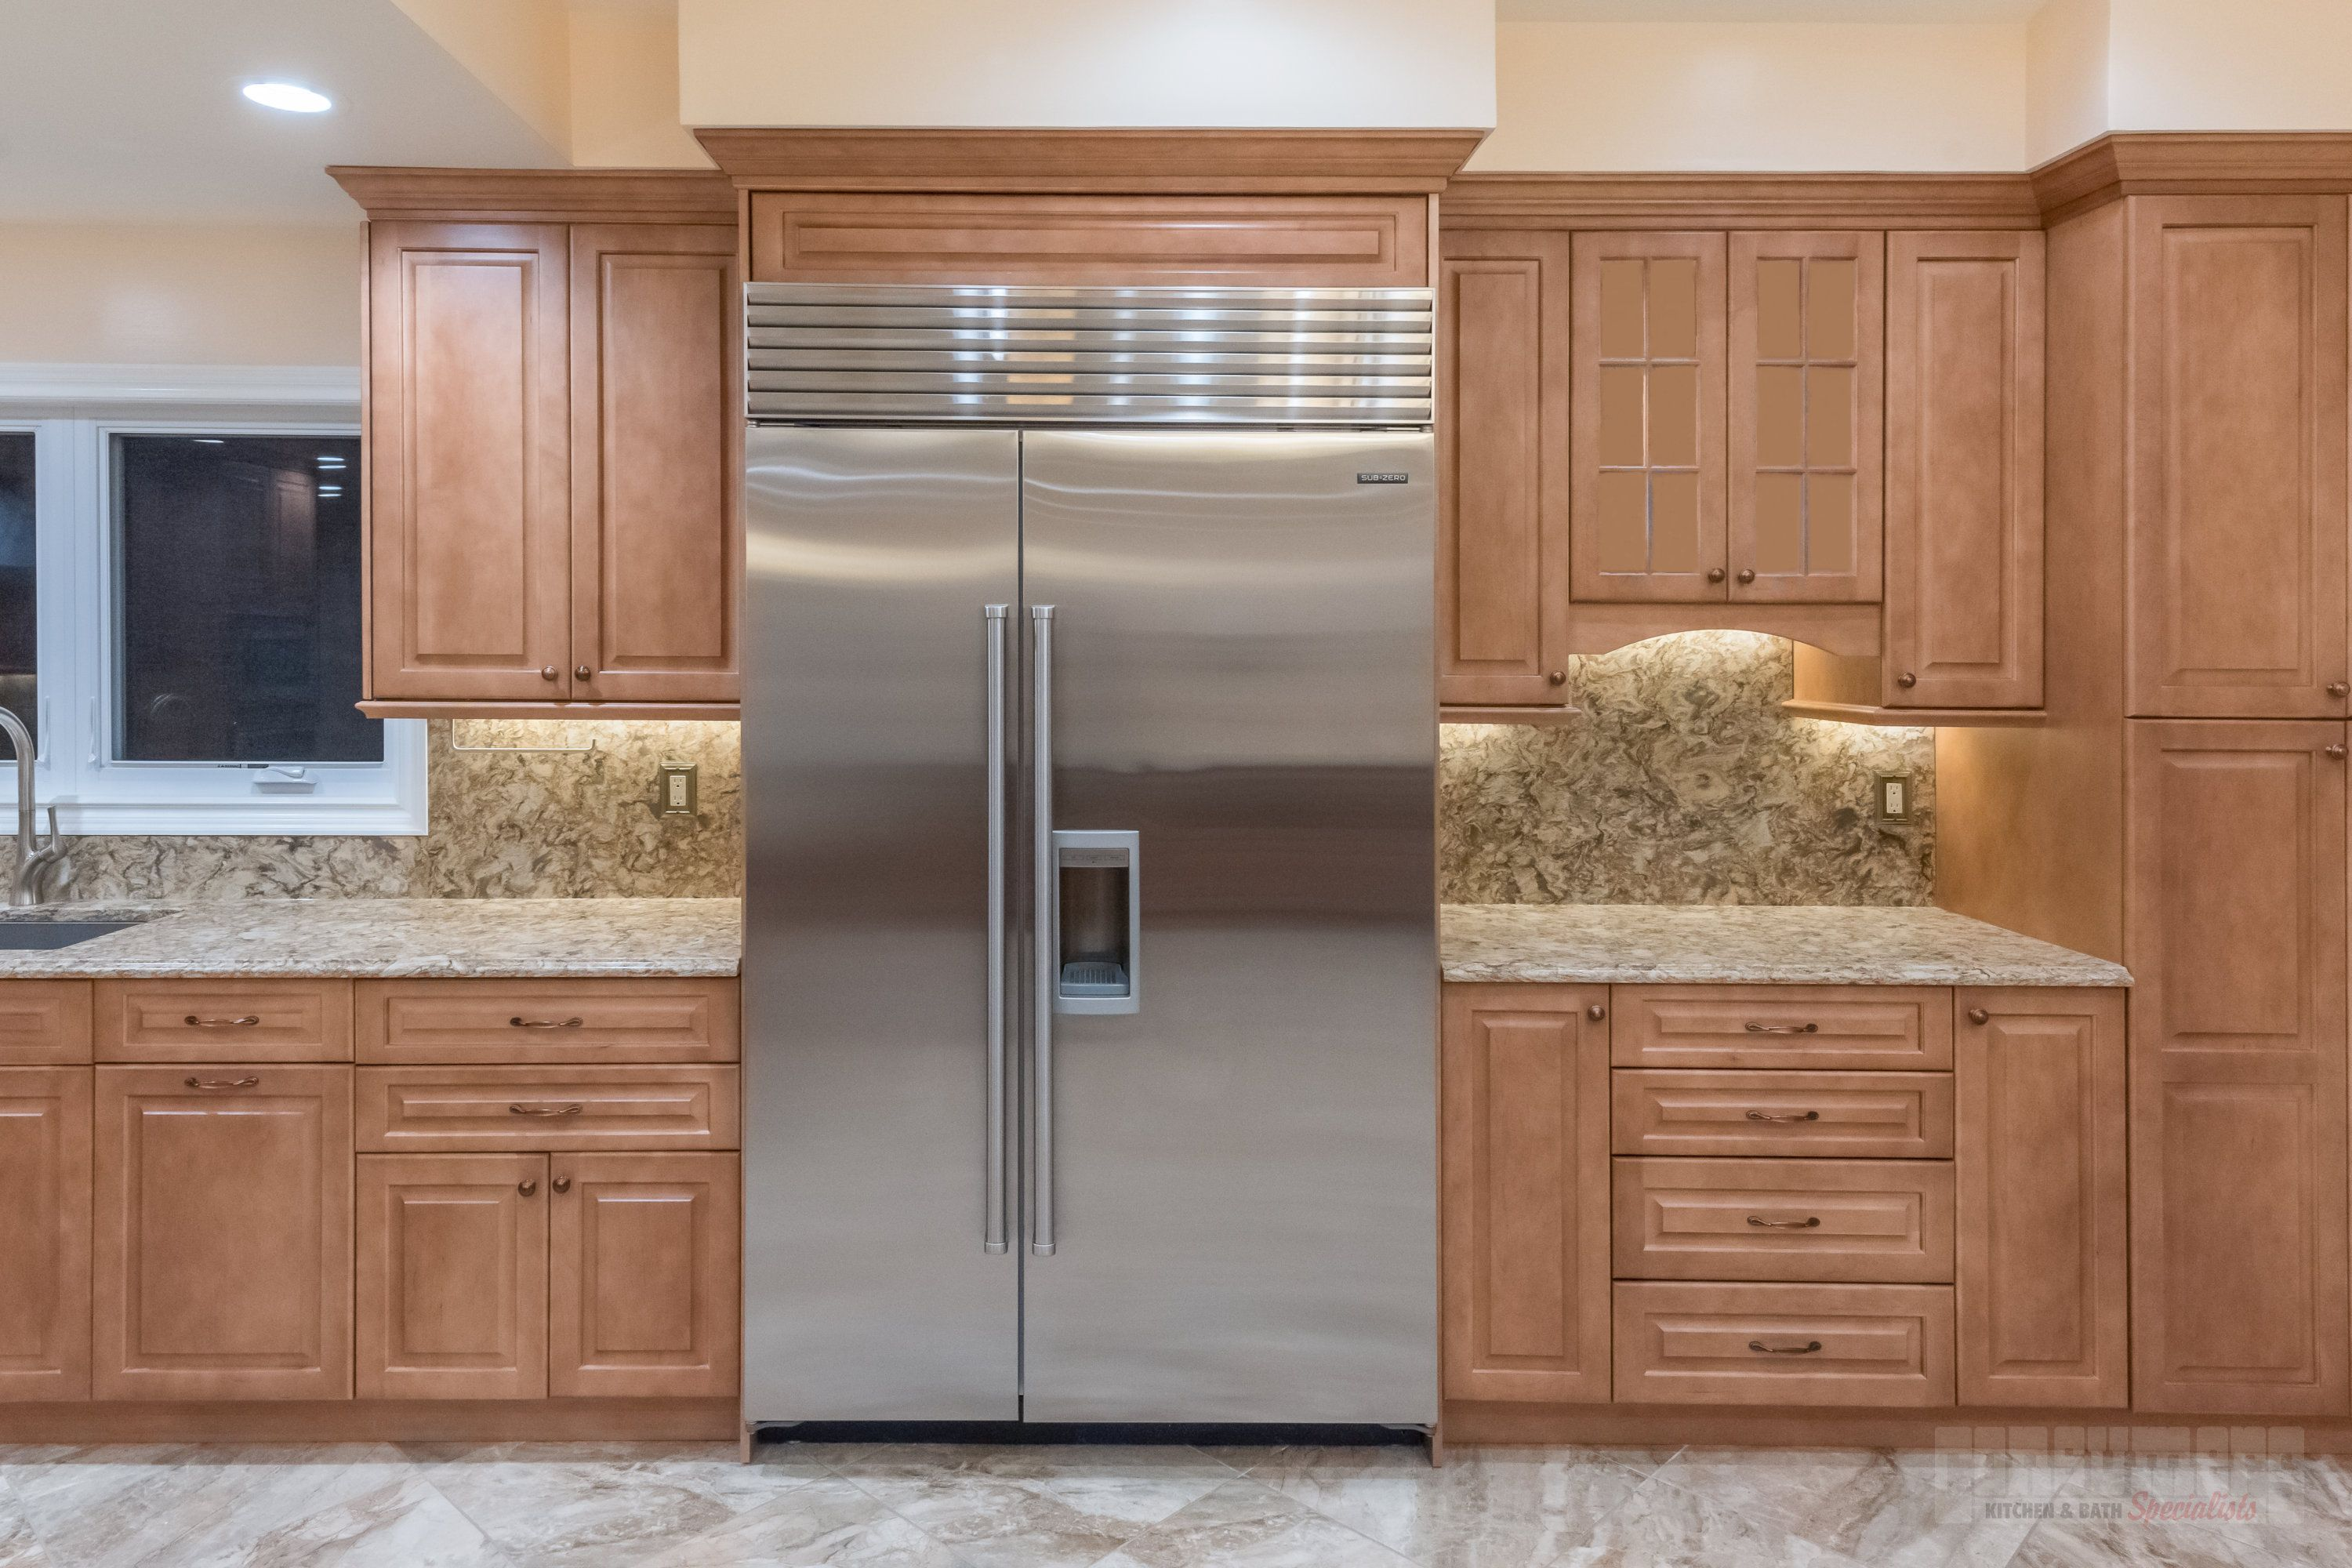 Pin By Consumers Kitchens Baths On Roslyn Multi Room Kitchen